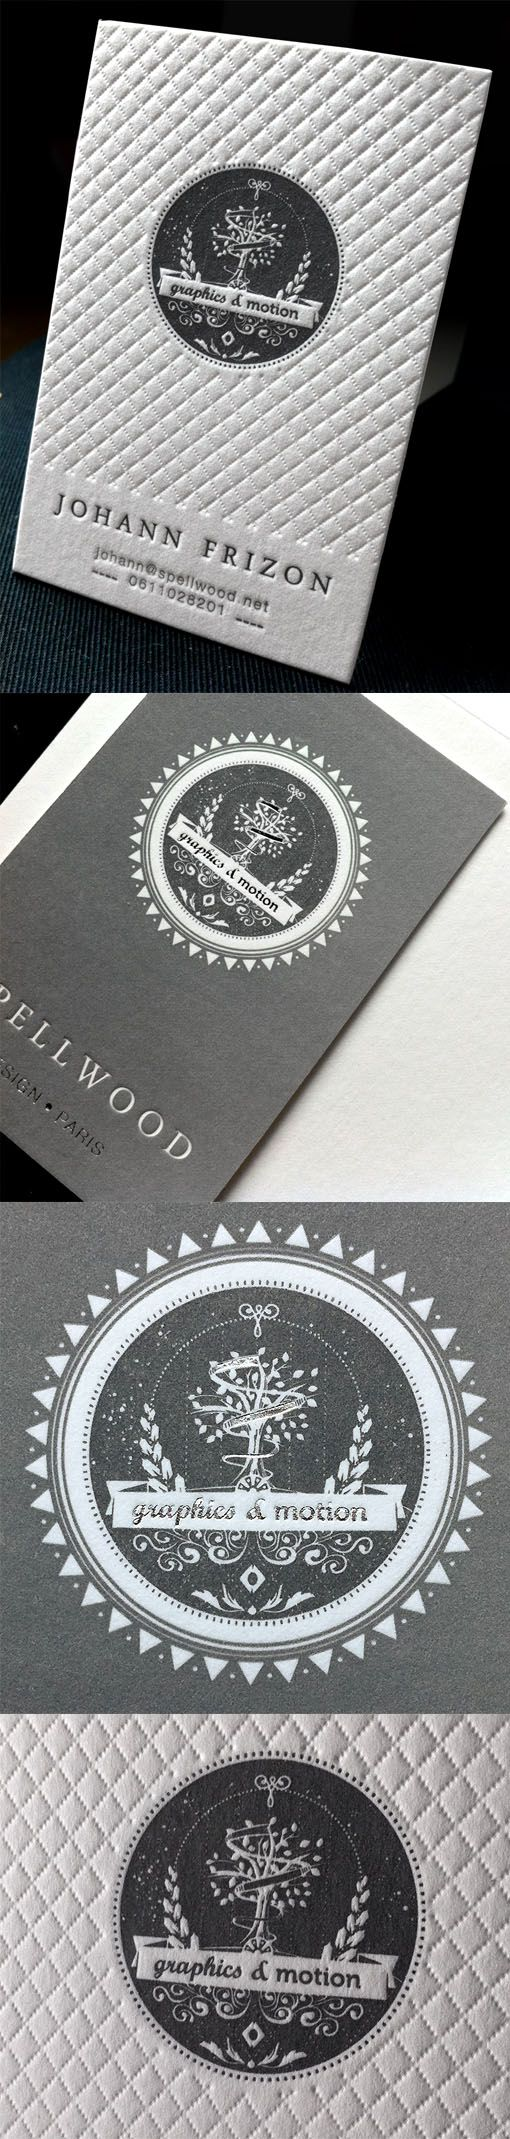 Stylish Textured Black And White Letterpress Business Card Design